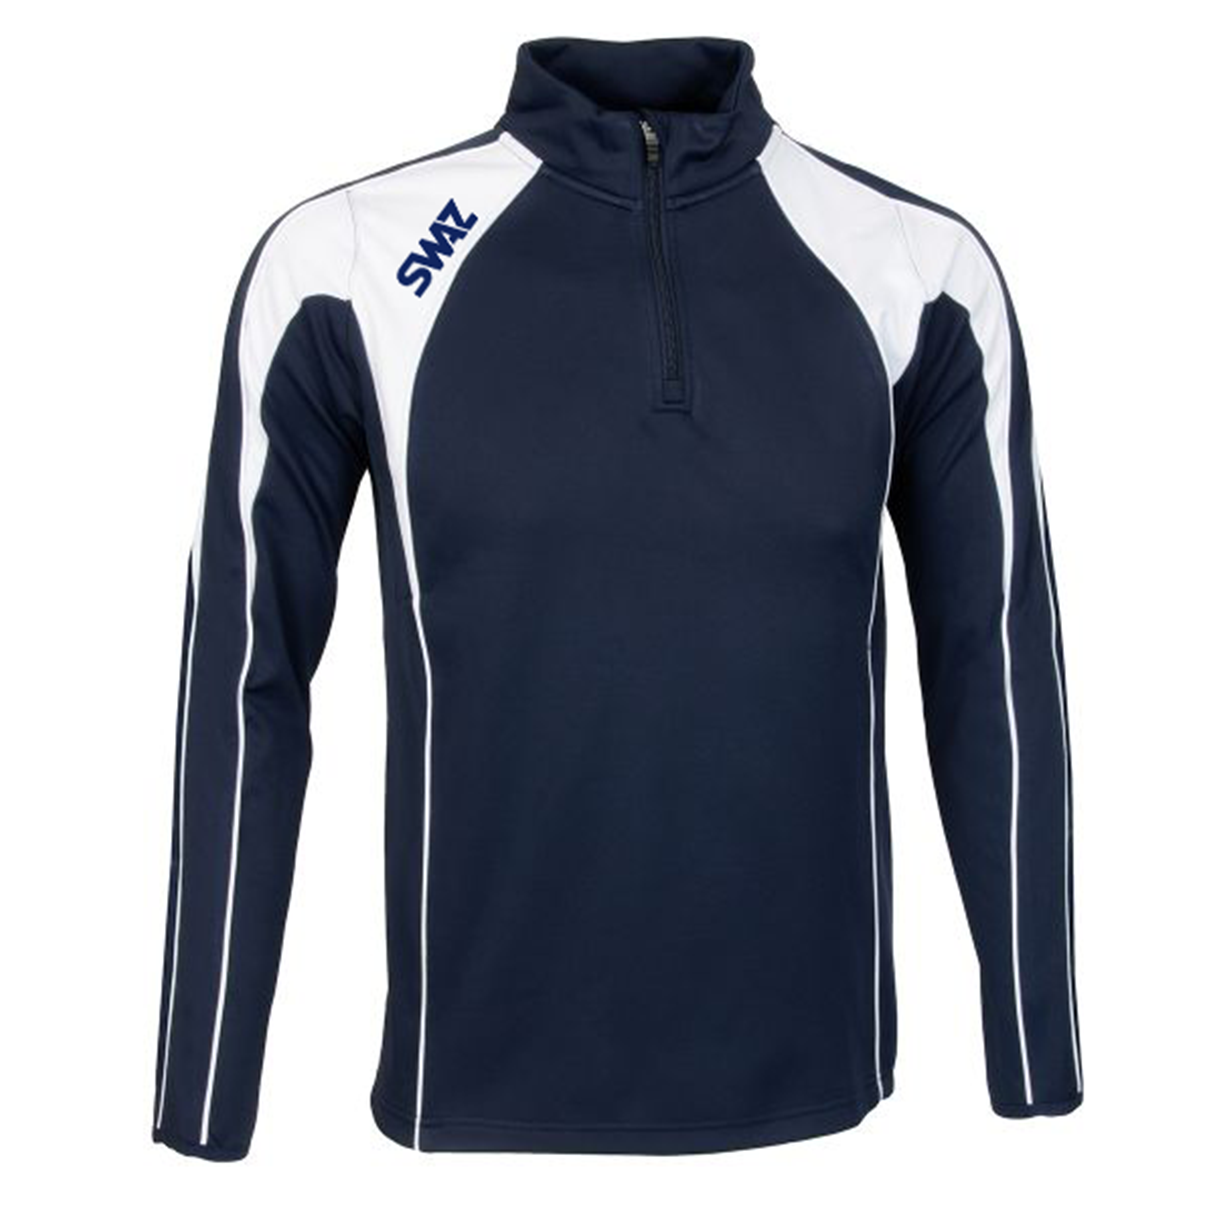 SWAZ Premier 1/4 Zip Midlayer Top – Navy/White